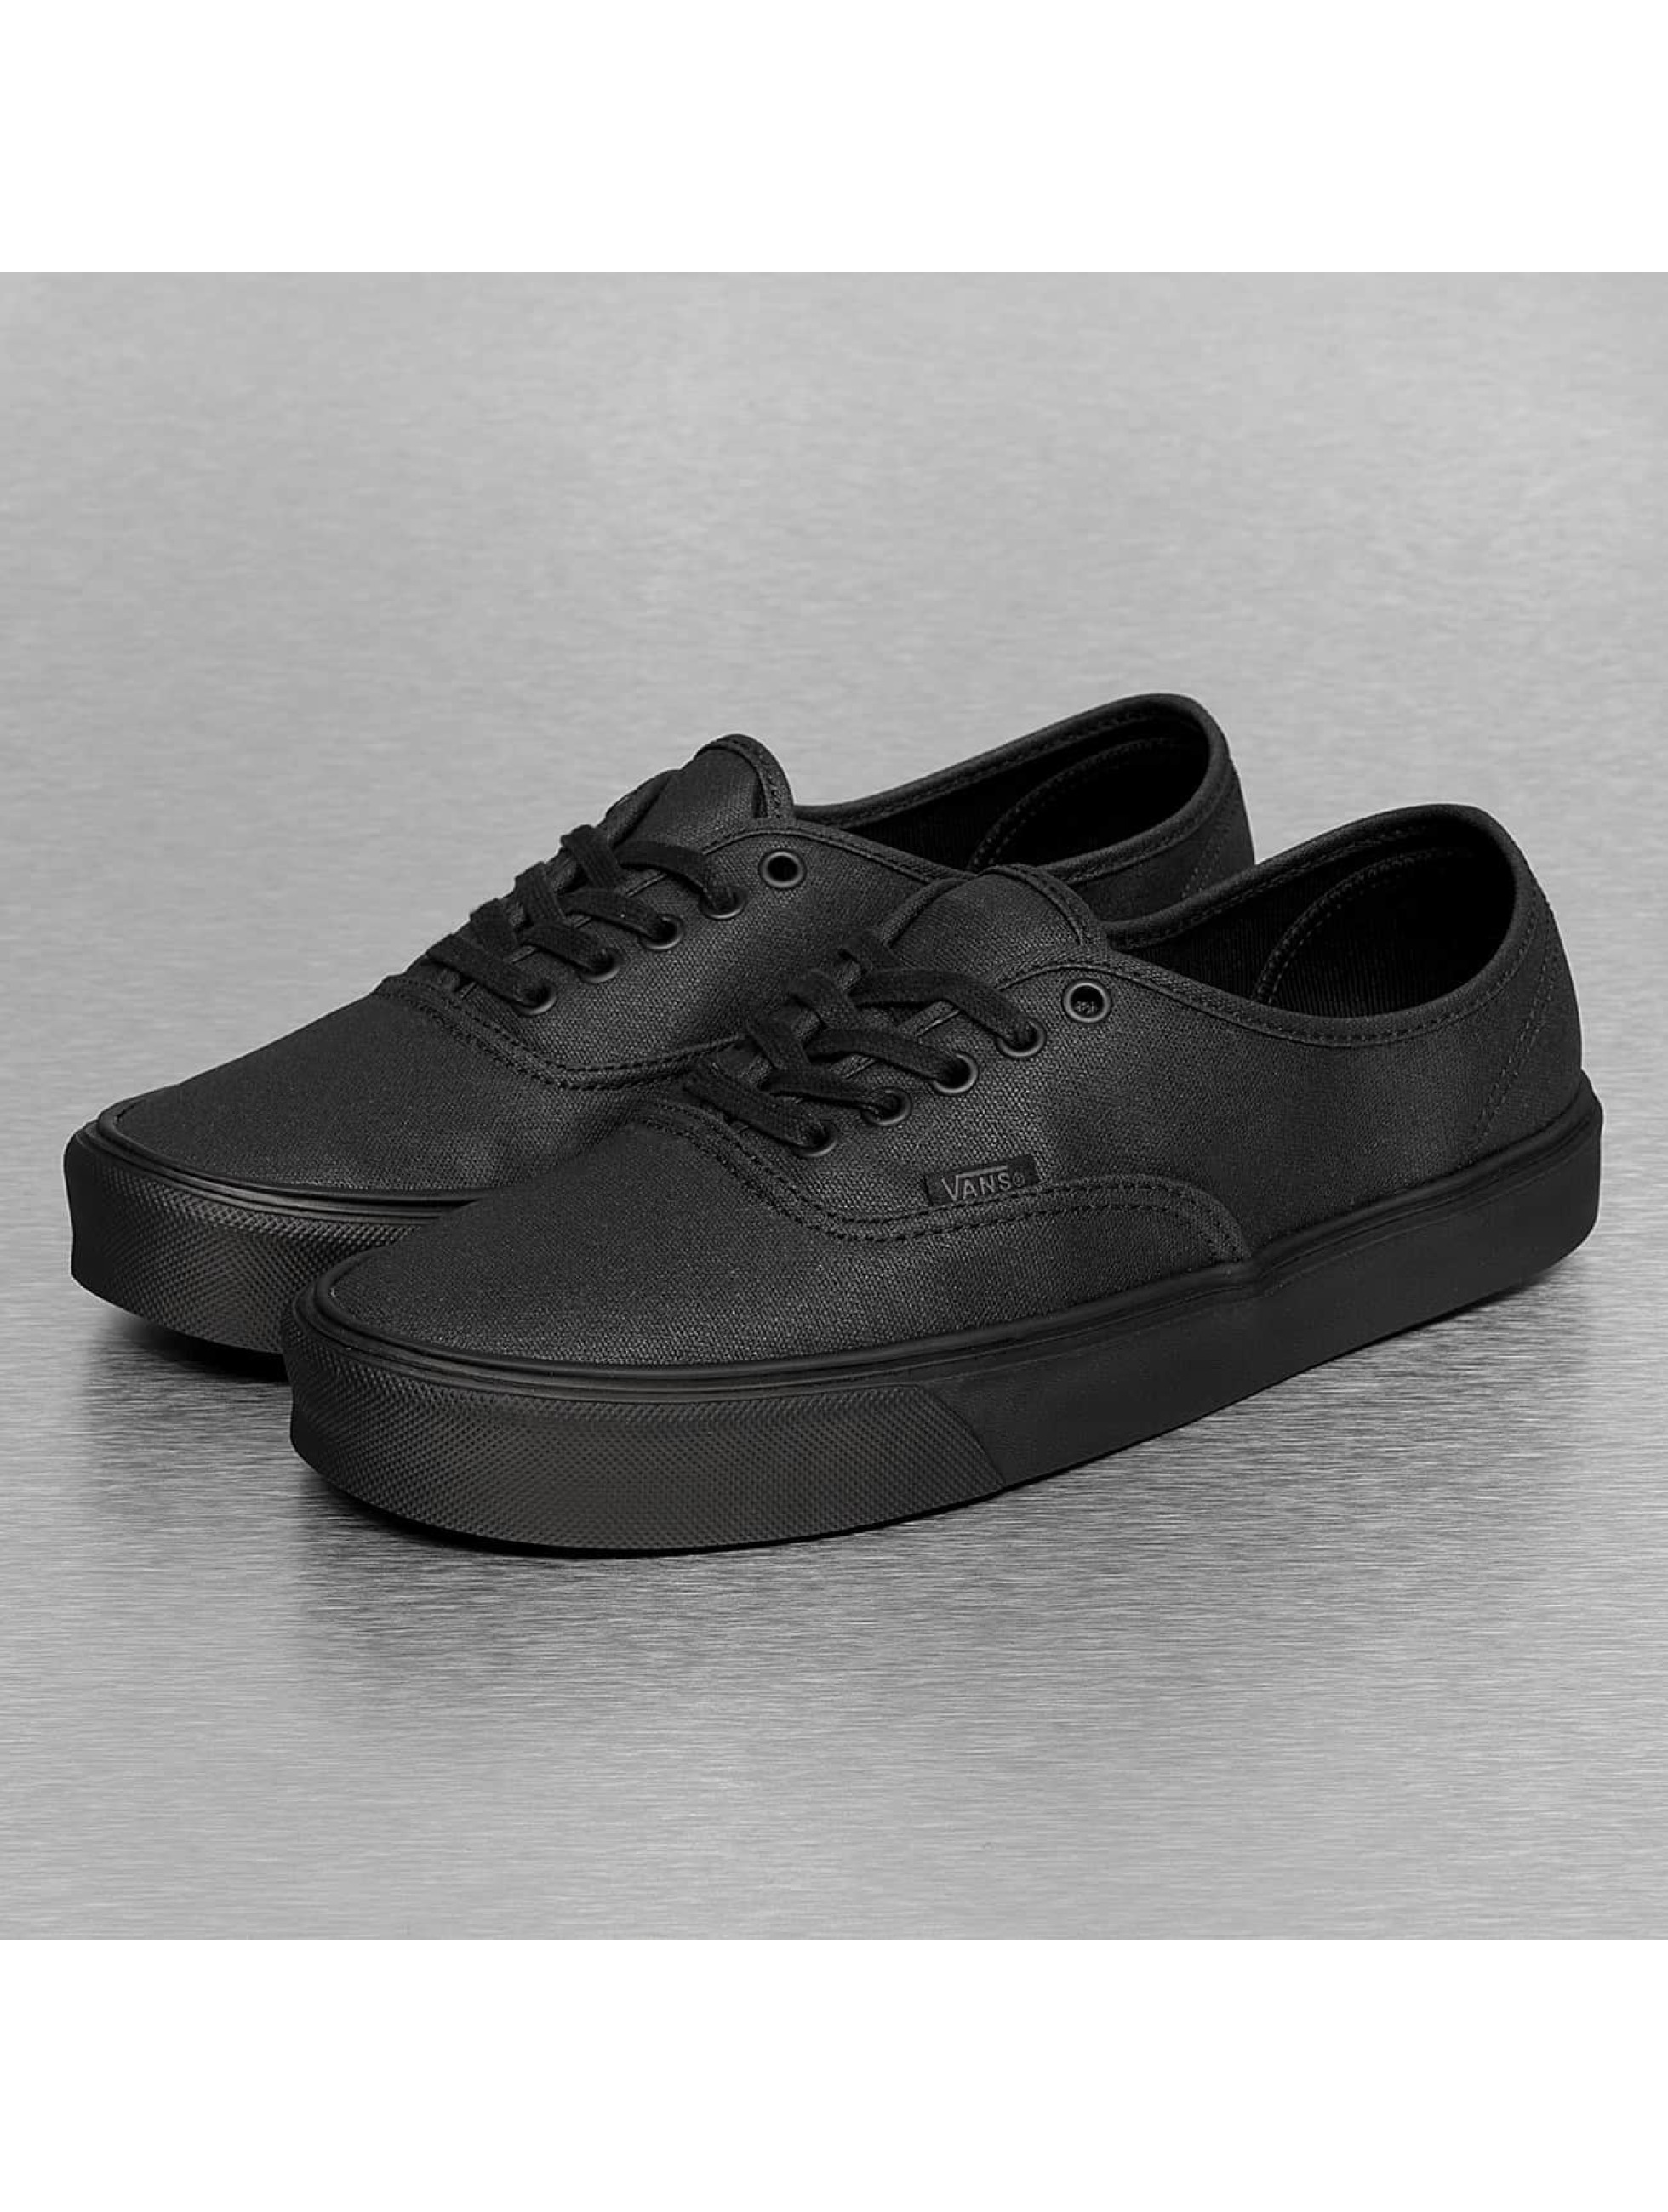 Vans Black And White Authentic